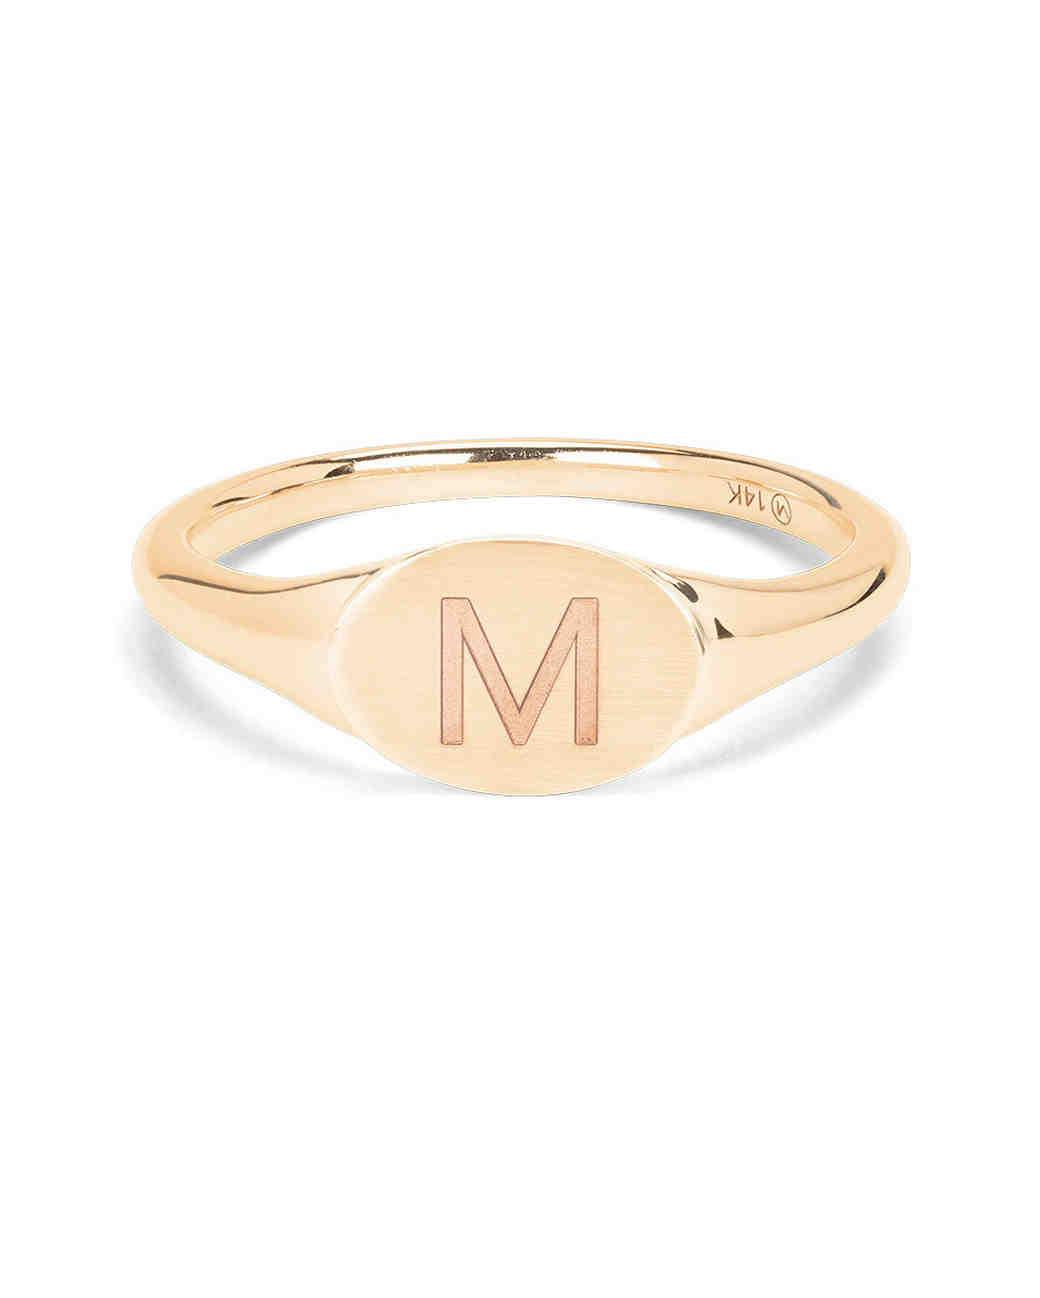 bridesmaid gift mejuri gold signet ring M